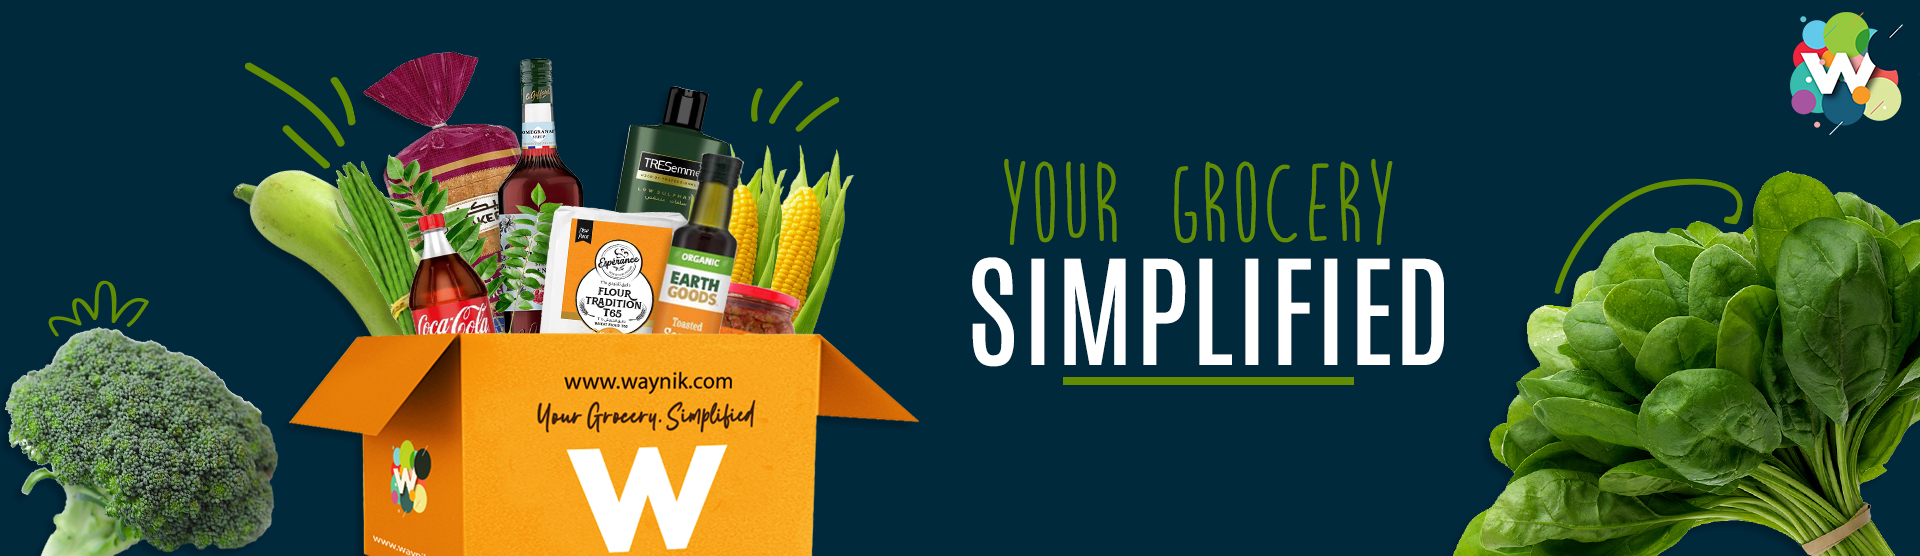 Your Grocery Simplified